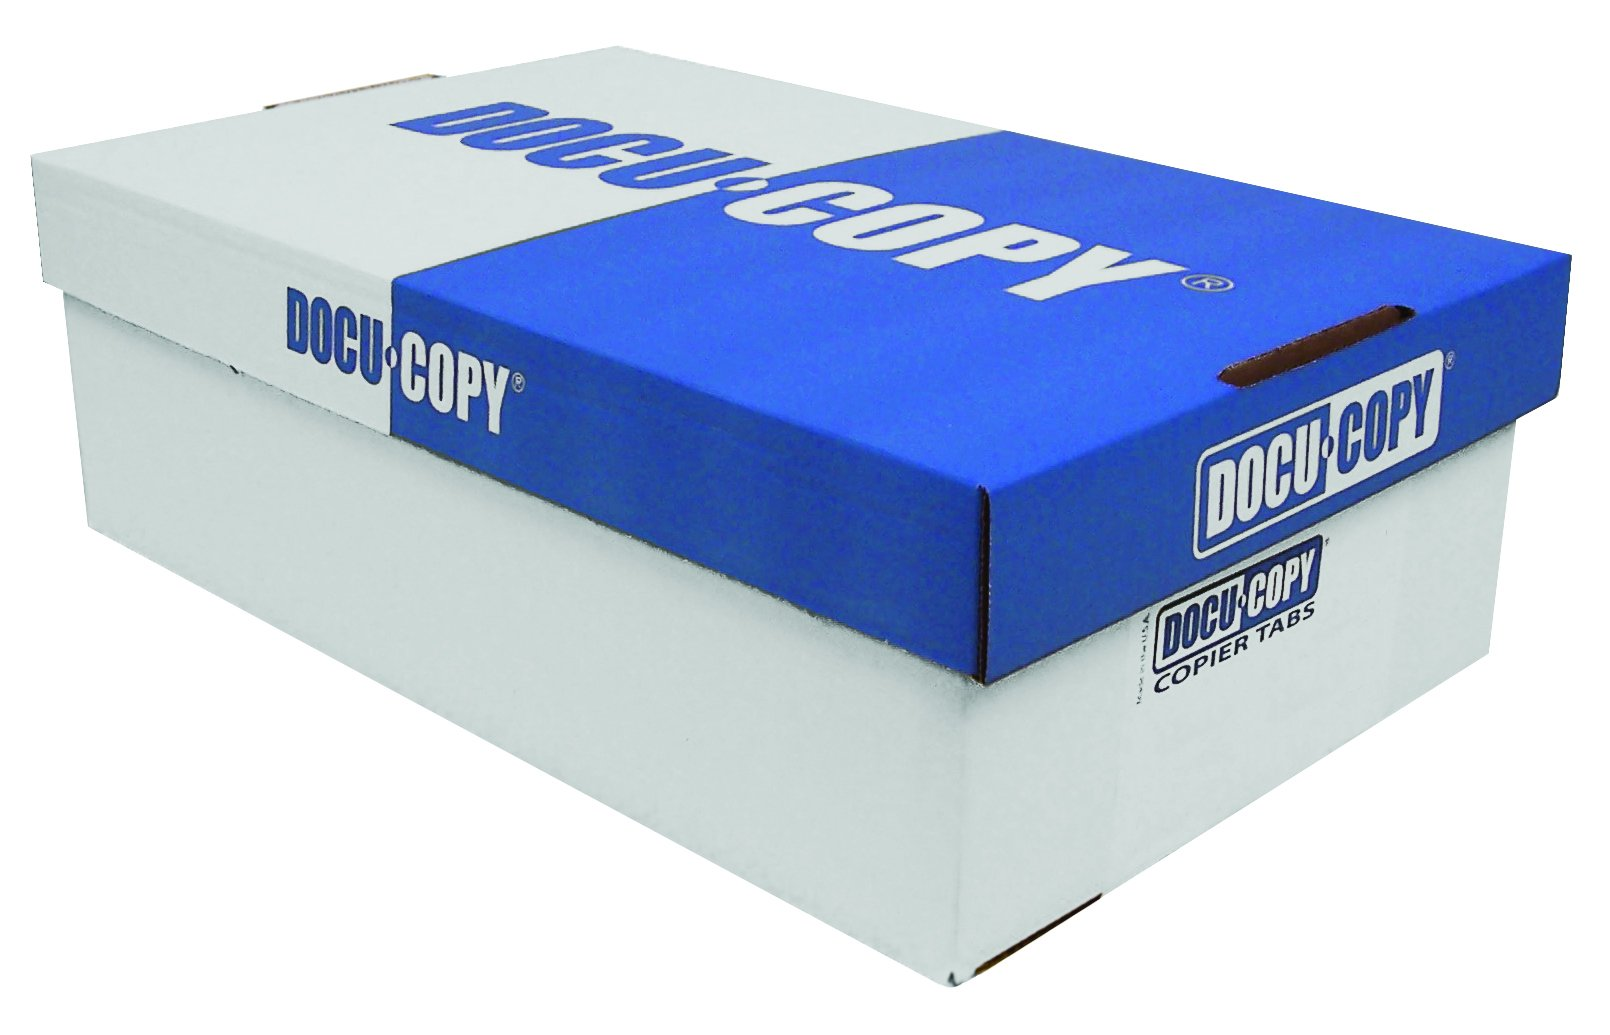 DocuCopy 1047 Index Tabs 90# Plain Paper 1/8 Cut Reverse Collated No Holes by DocuCopy